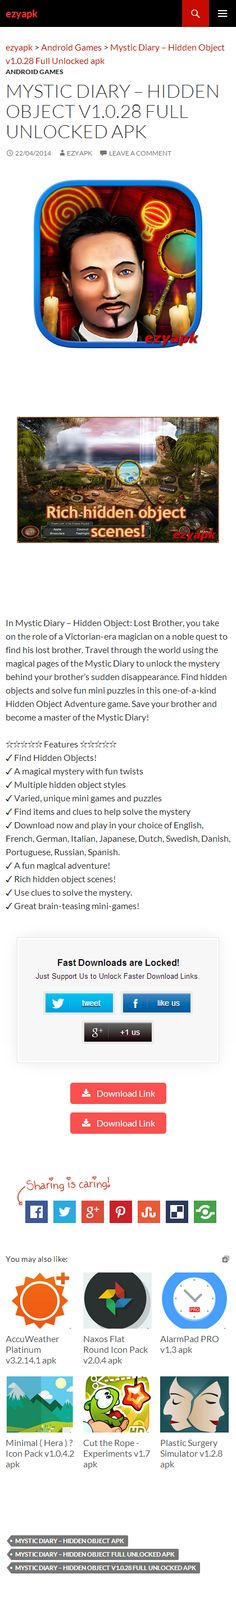 Android Games Mystic Diary – Hidden Object v1.0.28 Full Unlocked apk - ezyapk In Mystic Diary – Hidden Object: Lost Brother, you take on the role of a Victorian-era magician on a noble quest to find his lost brother. http://www.ezyapk.com/android-games/mystic-diary-hidden-object-v1-0-28-full-unlocked-apk/